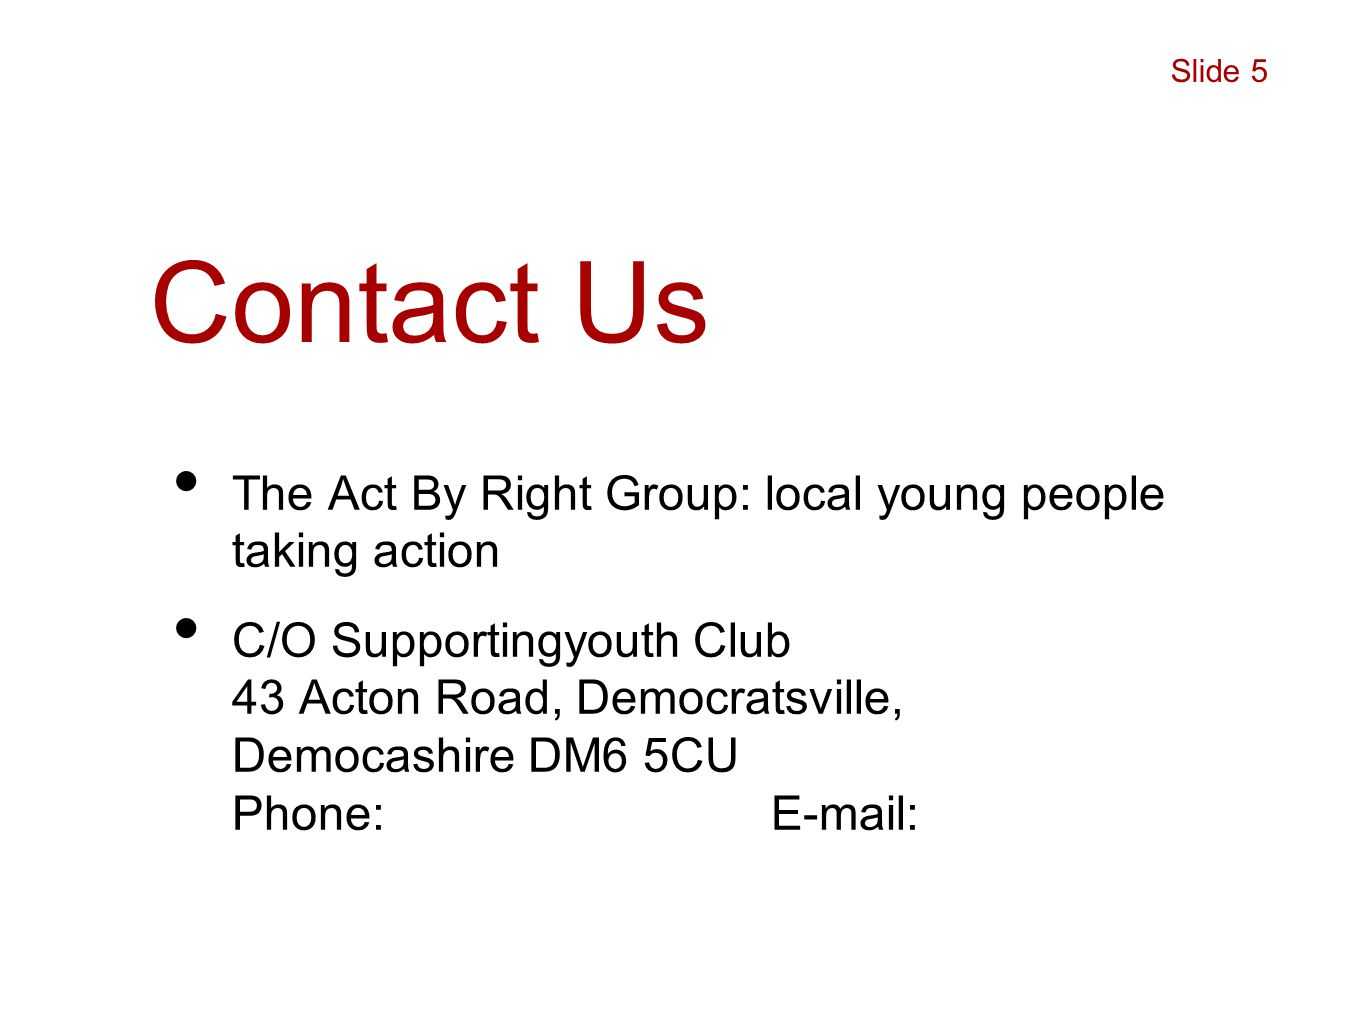 Contact Us The Act By Right Group: local young people taking action C/O Supportingyouth Club 43 Acton Road, Democratsville, Democashire DM6 5CU Phone: E-mail: Slide 5